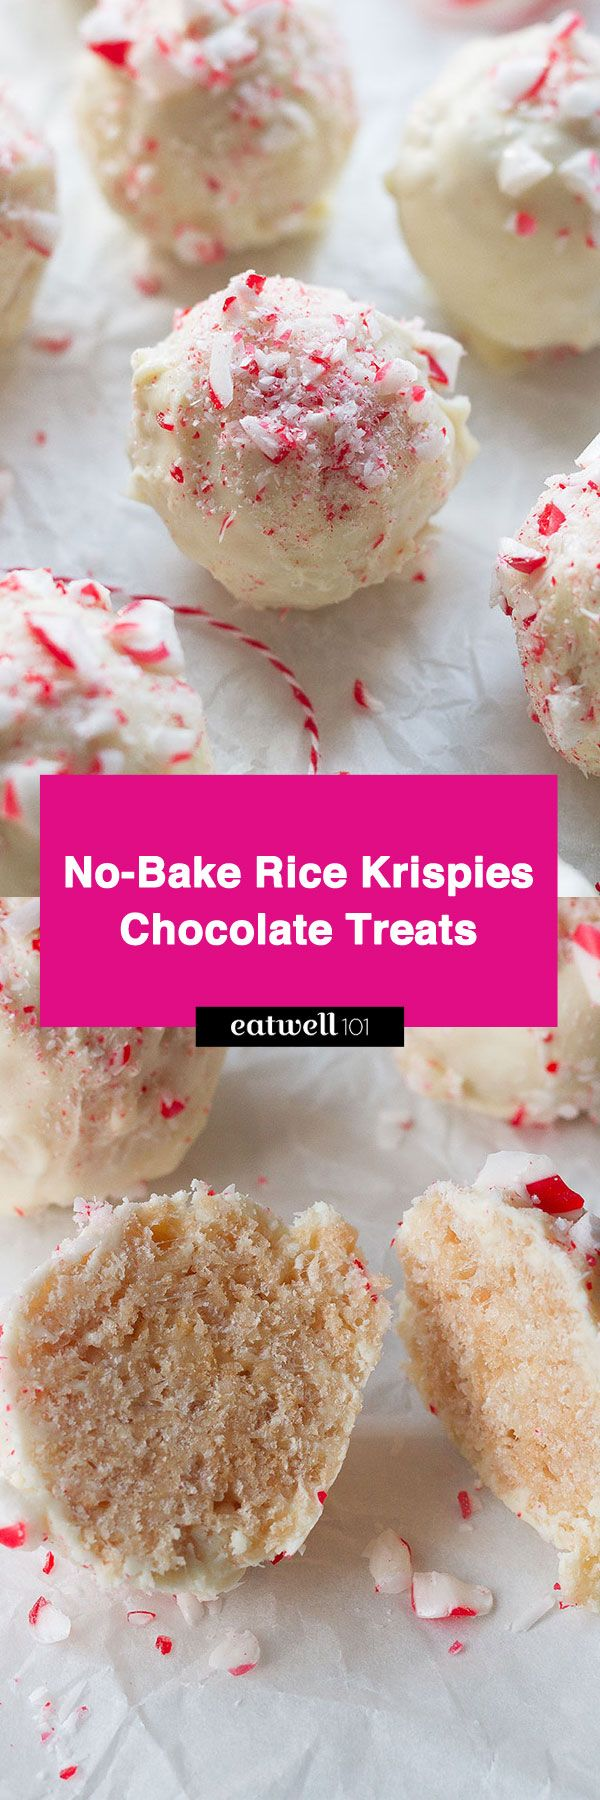 Rice Krispies Treats with White Chocolate & Peppermint — Soft and chewy with an irresistible white chocolate coating.